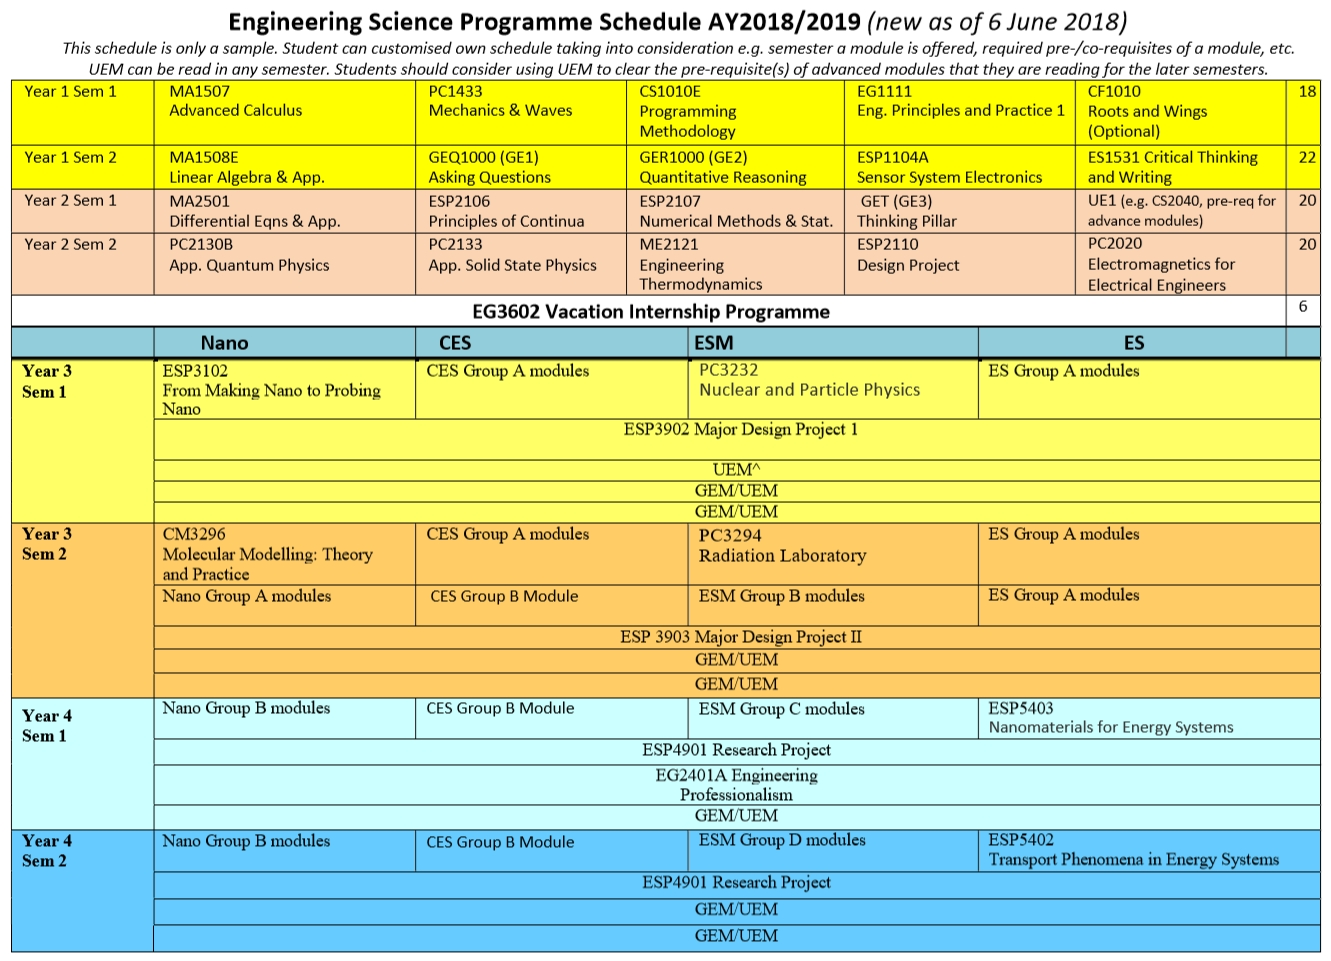 Recommended Semester Schedule - Engineering Science Programme throughout Nus Academic Calendar 2019/2020